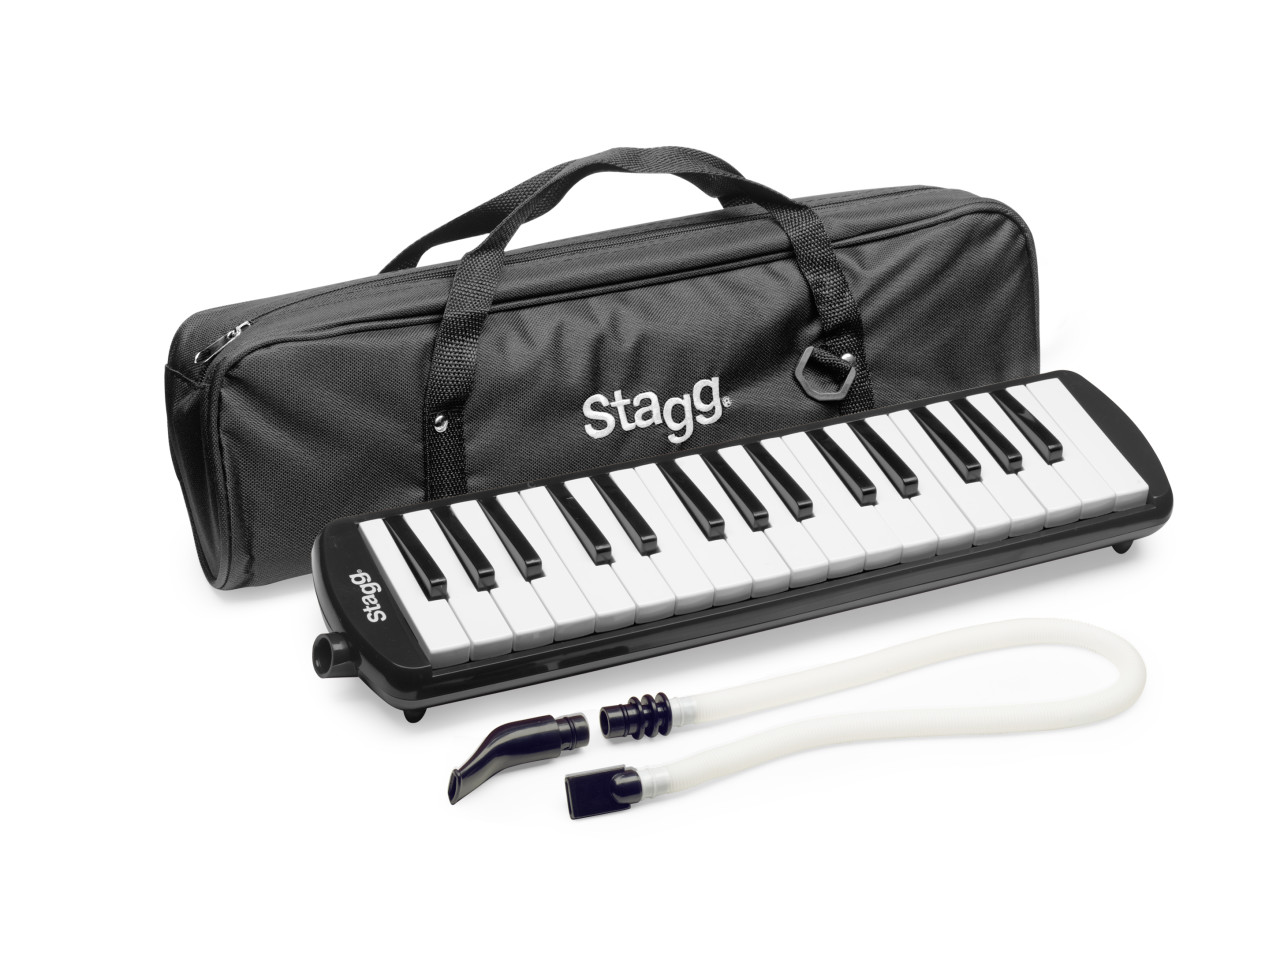 Black plastic melodica with 32 keys and black bag